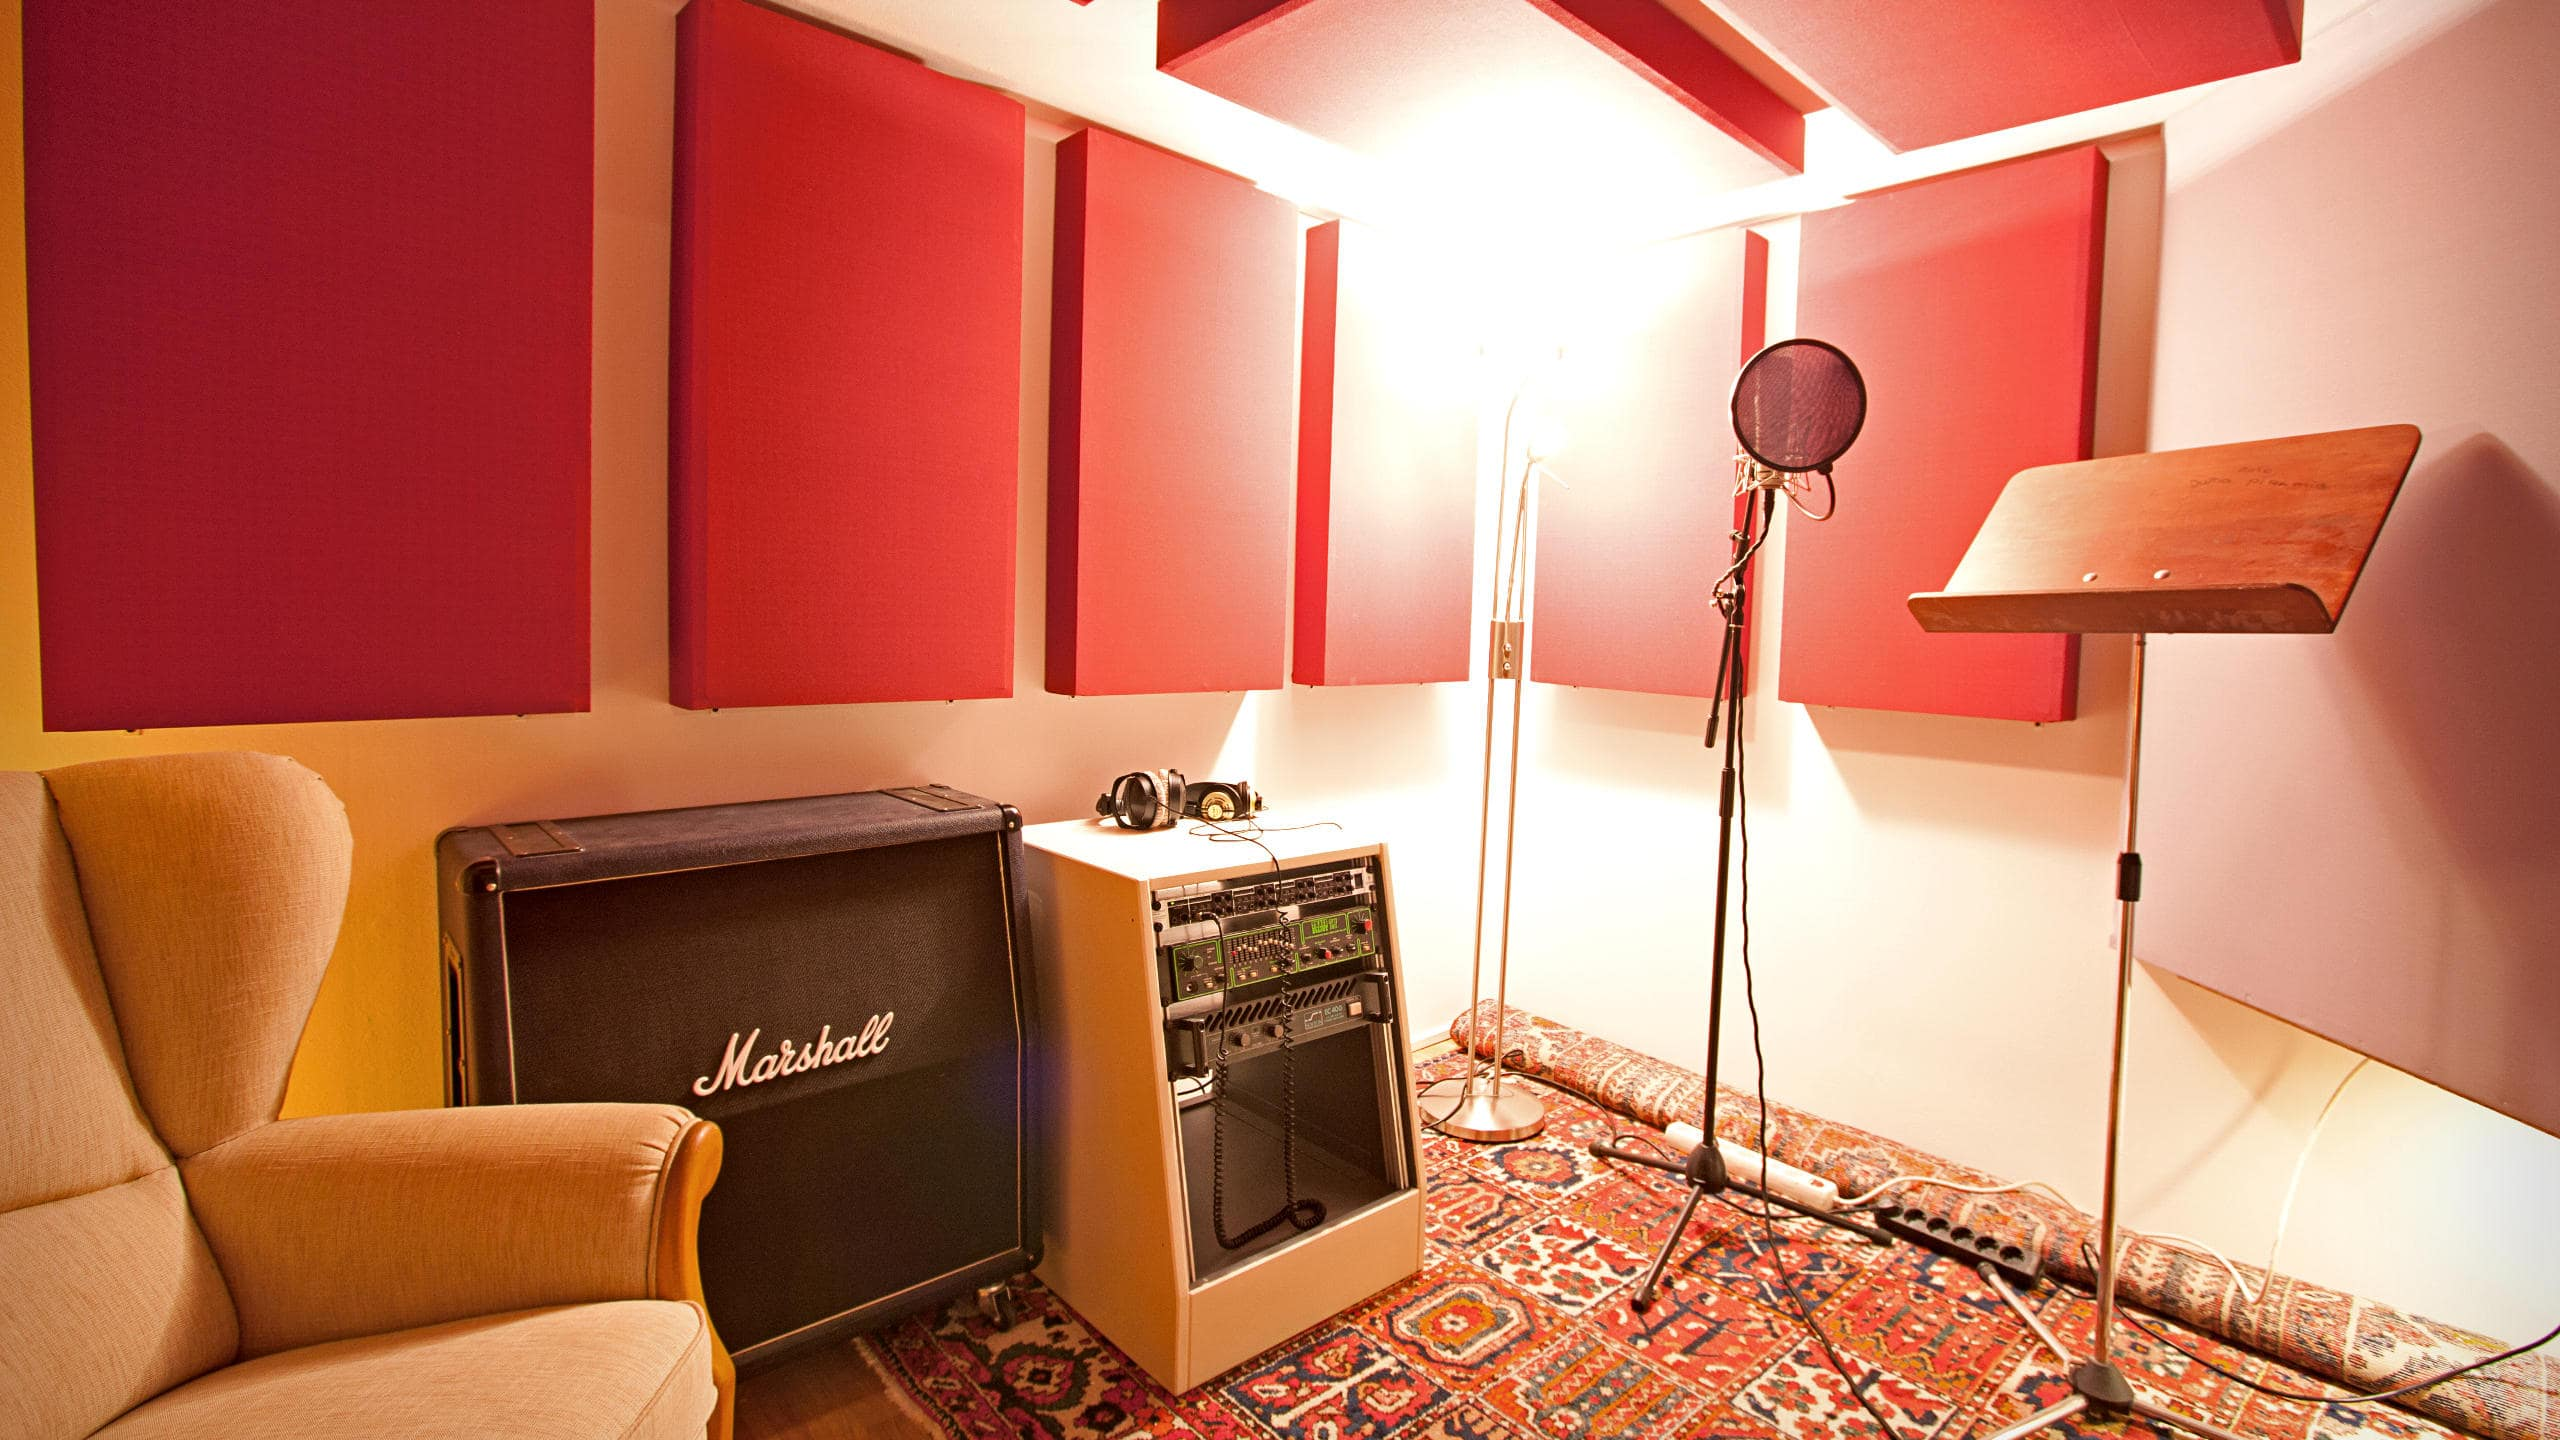 Tracking Room 2